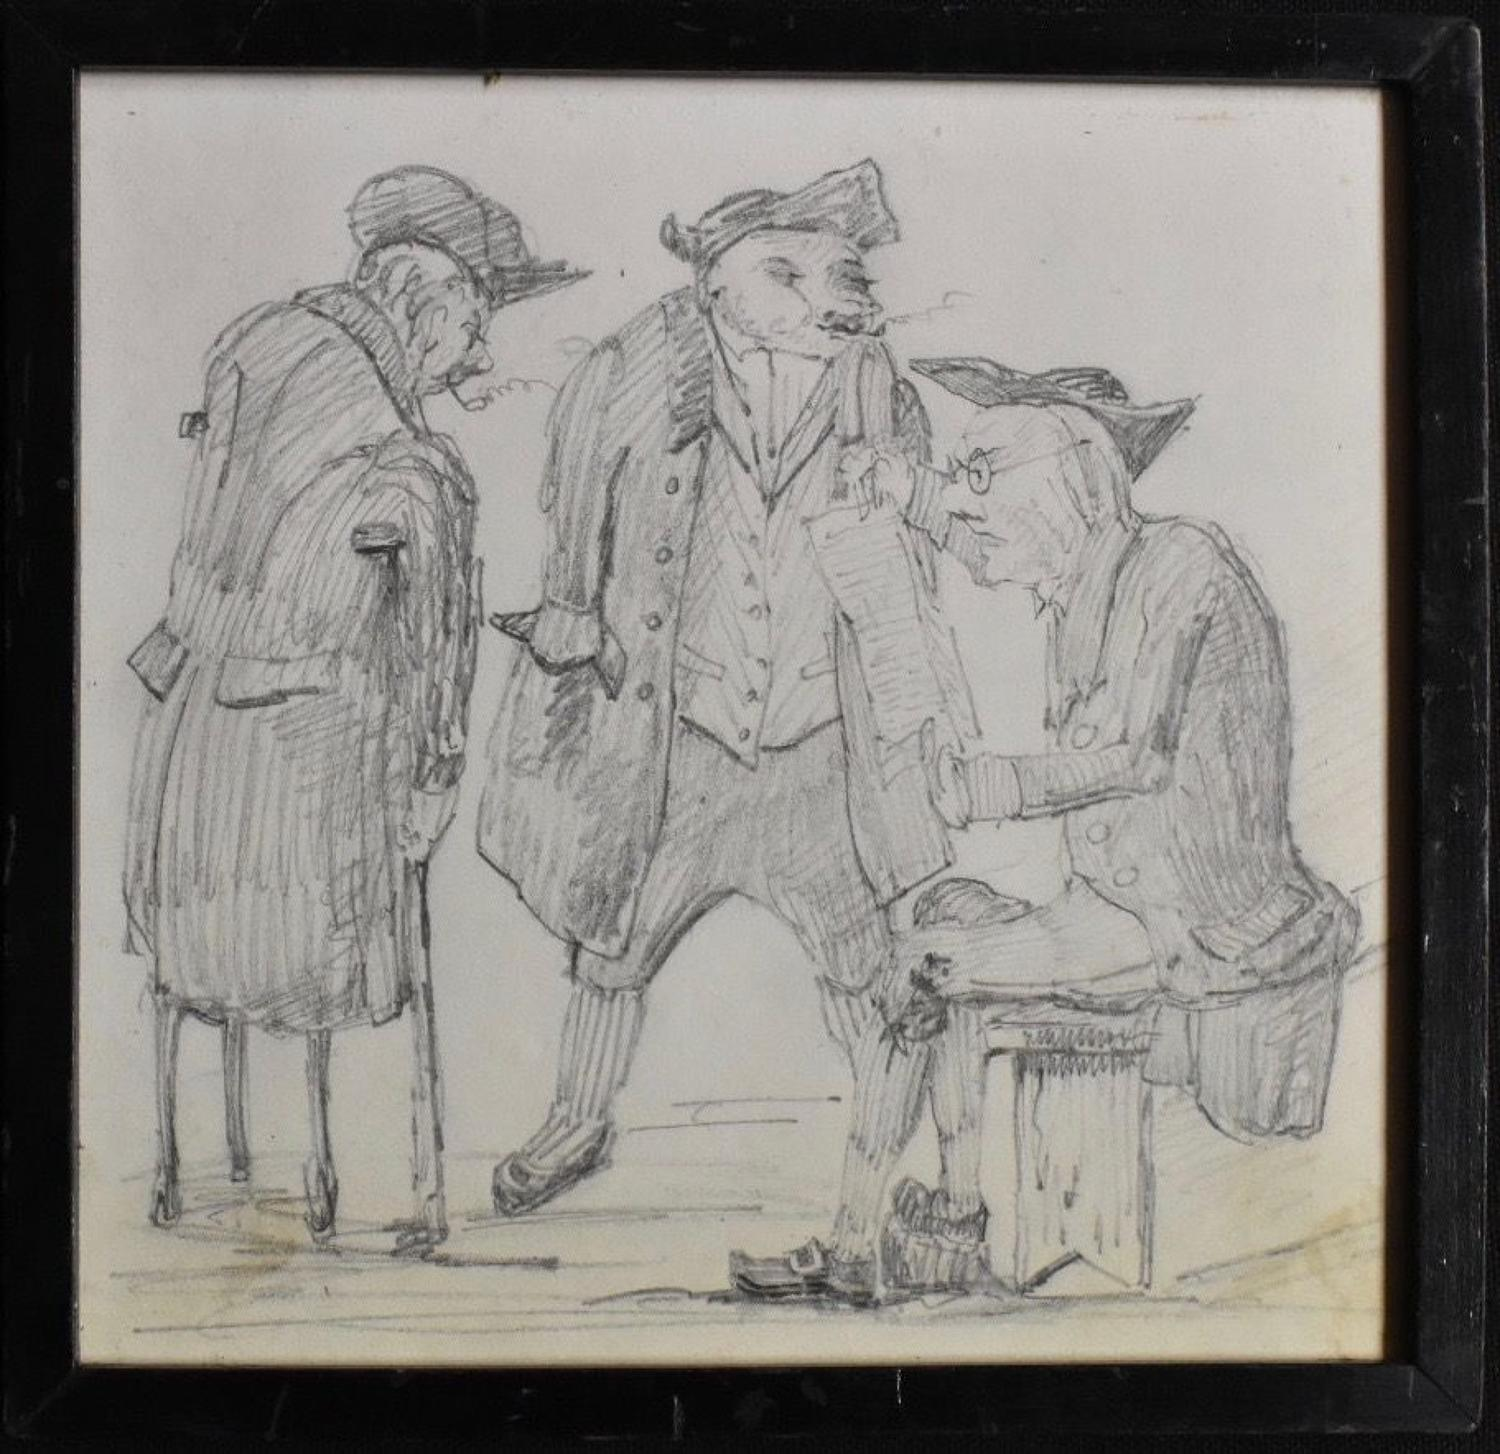 19th century satirical drawing